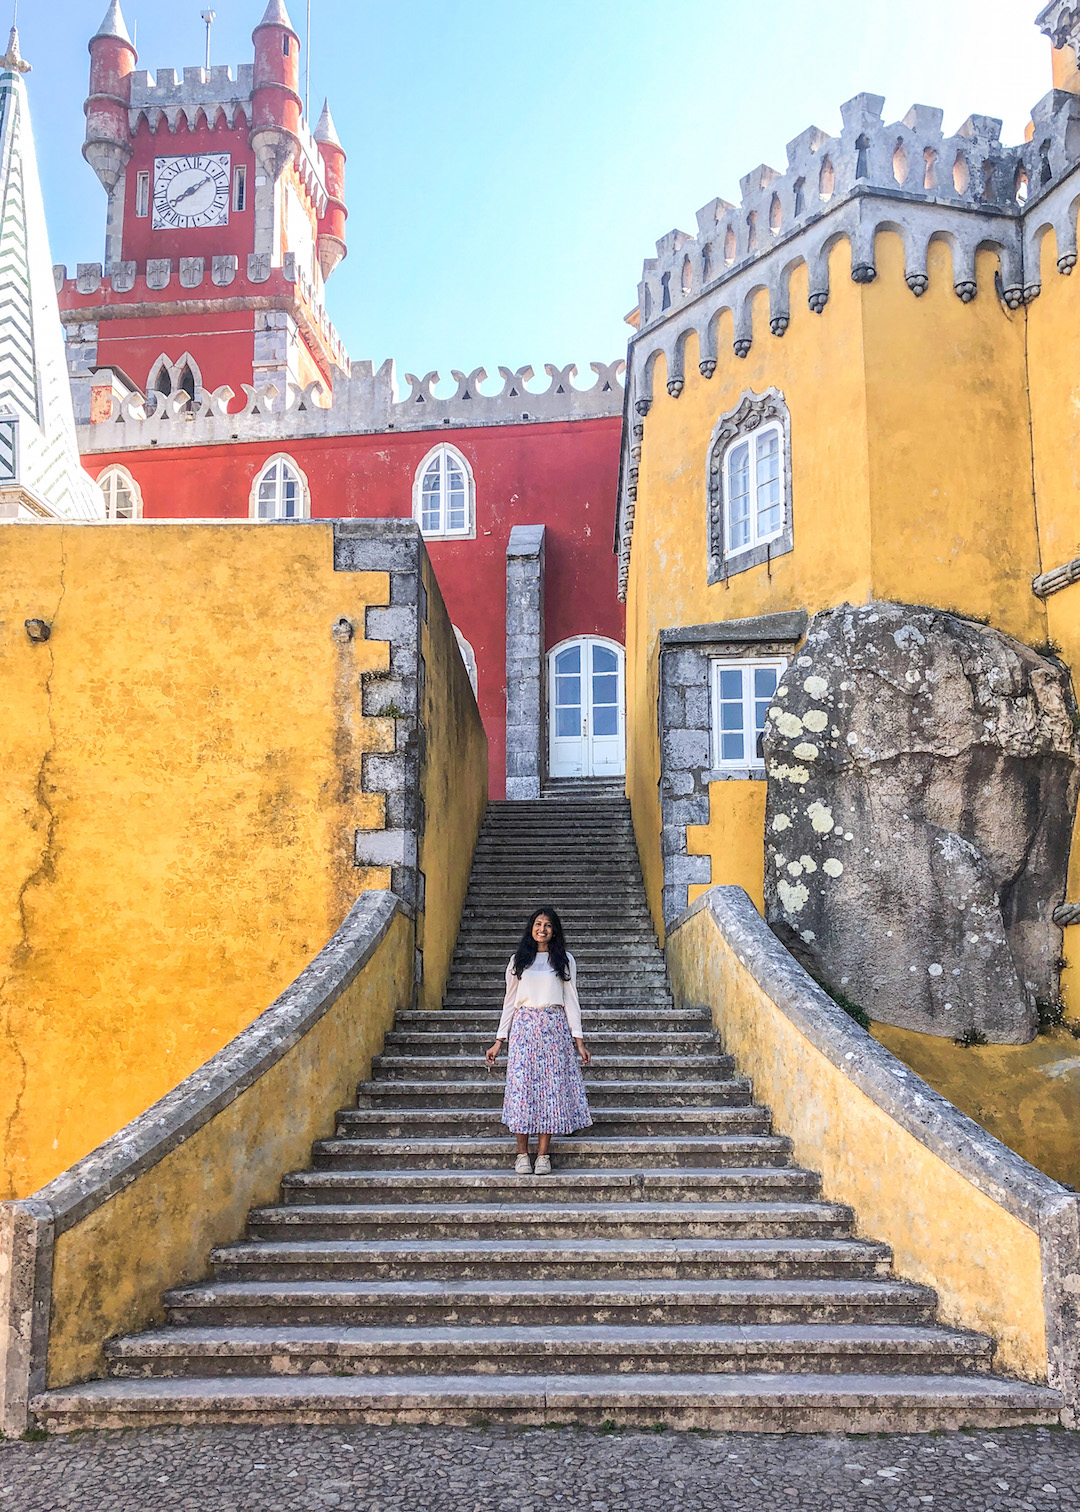 Her_Travel_Edit_at_Sintra_Pena_Palace